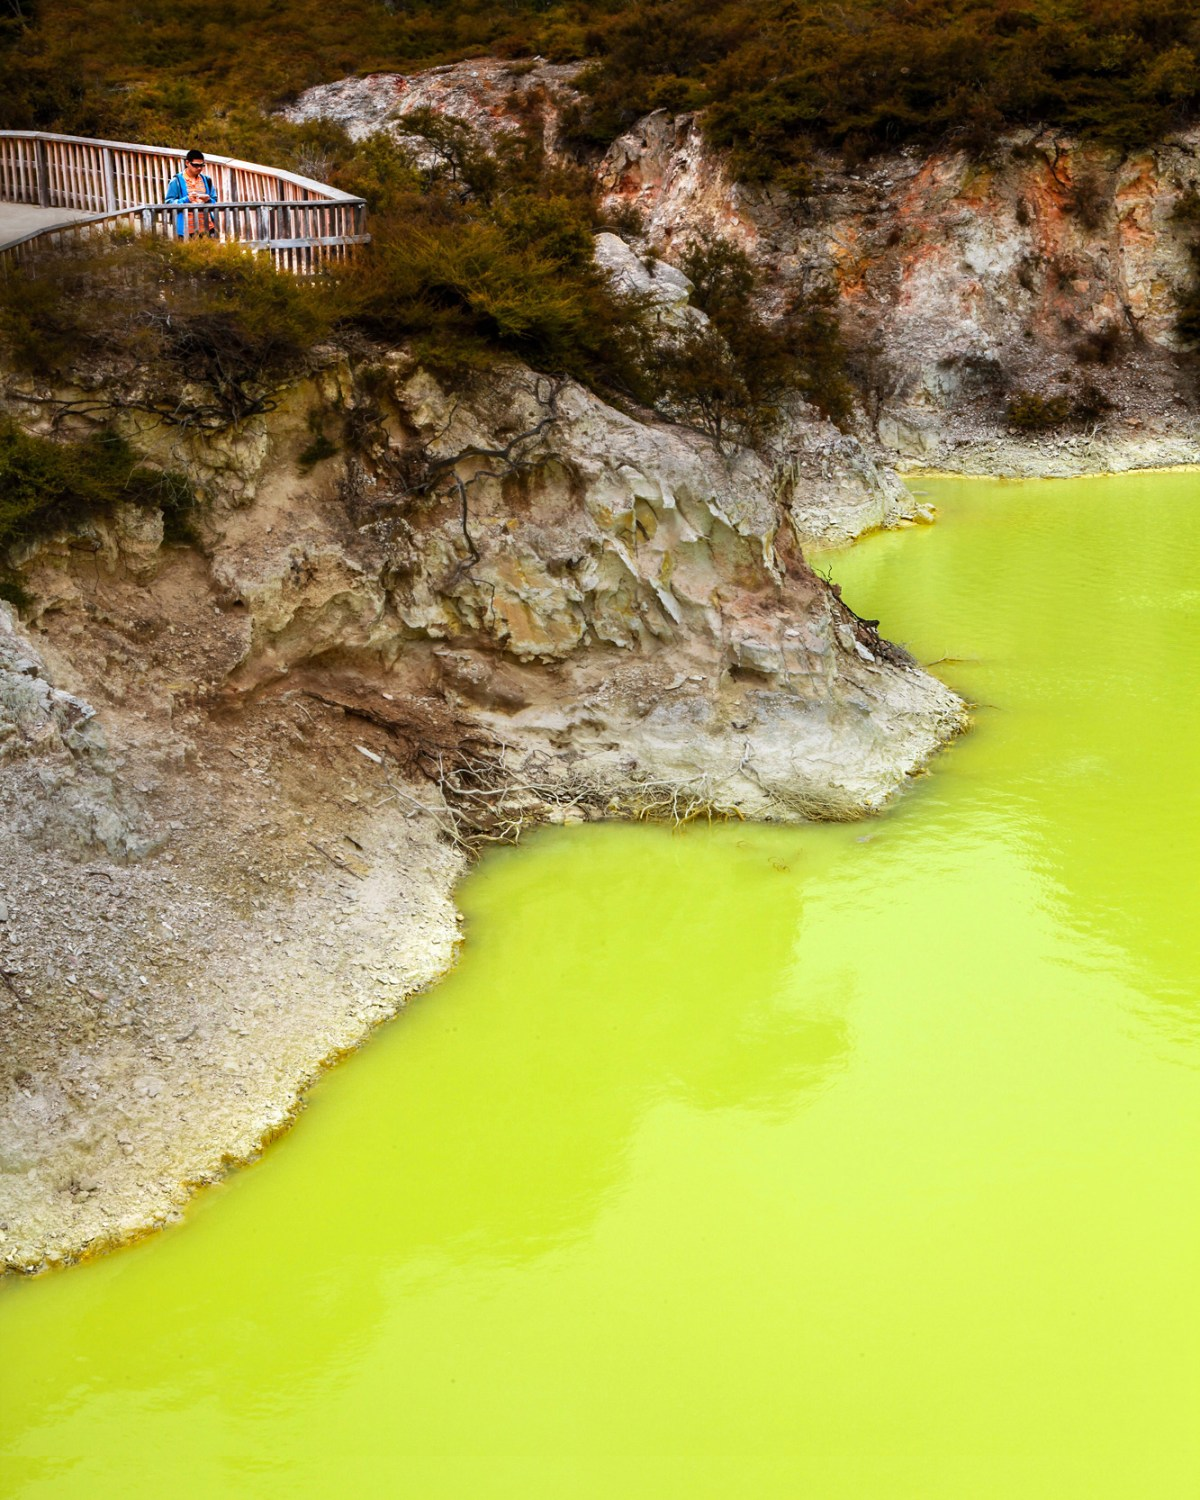 Nomadic Fare in Wai-O-Tapu Thermal Wonderland, New Zealand